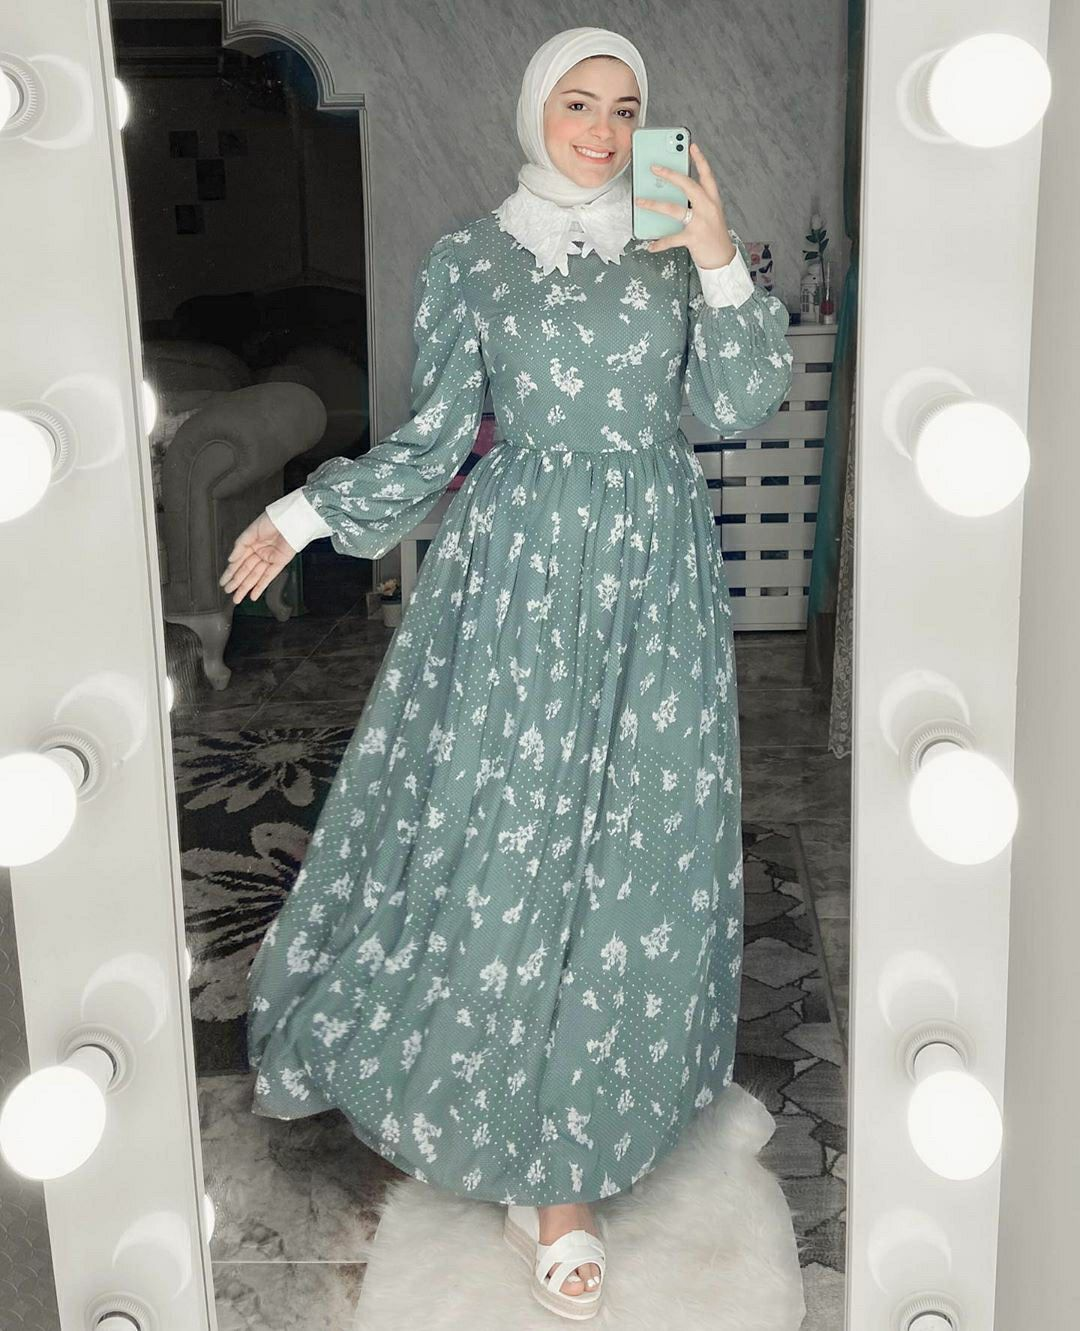 Floral Dot Print Contrast Collar A Line Dress Hijab Outfits Muslim Fashion Outfits Muslim Fashion Dress Muslimah Fashion Outfits